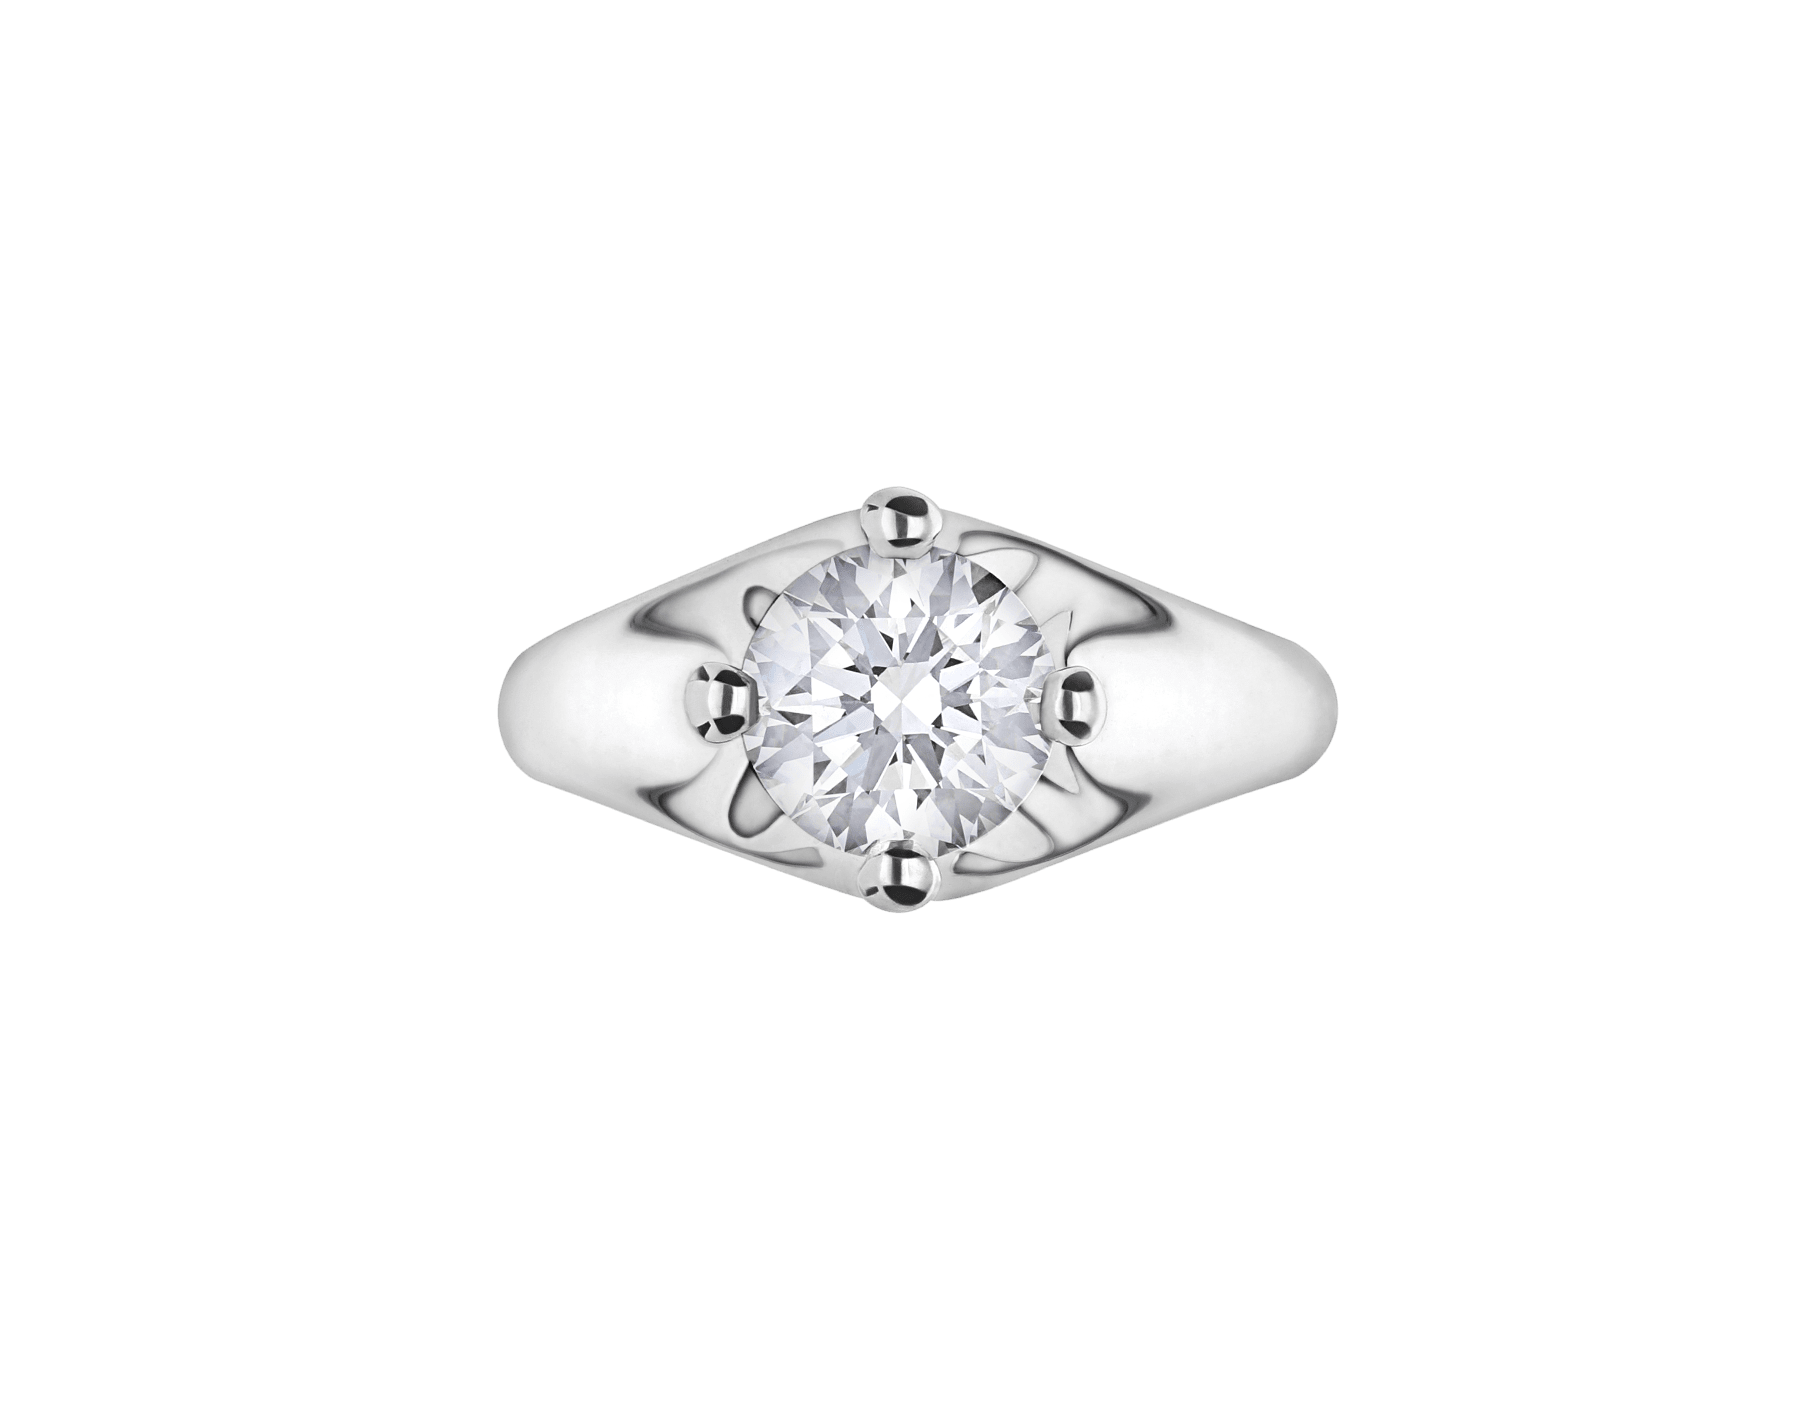 Corona platinum solitaire ring set with a round brilliant cut diamond 323743 image 3